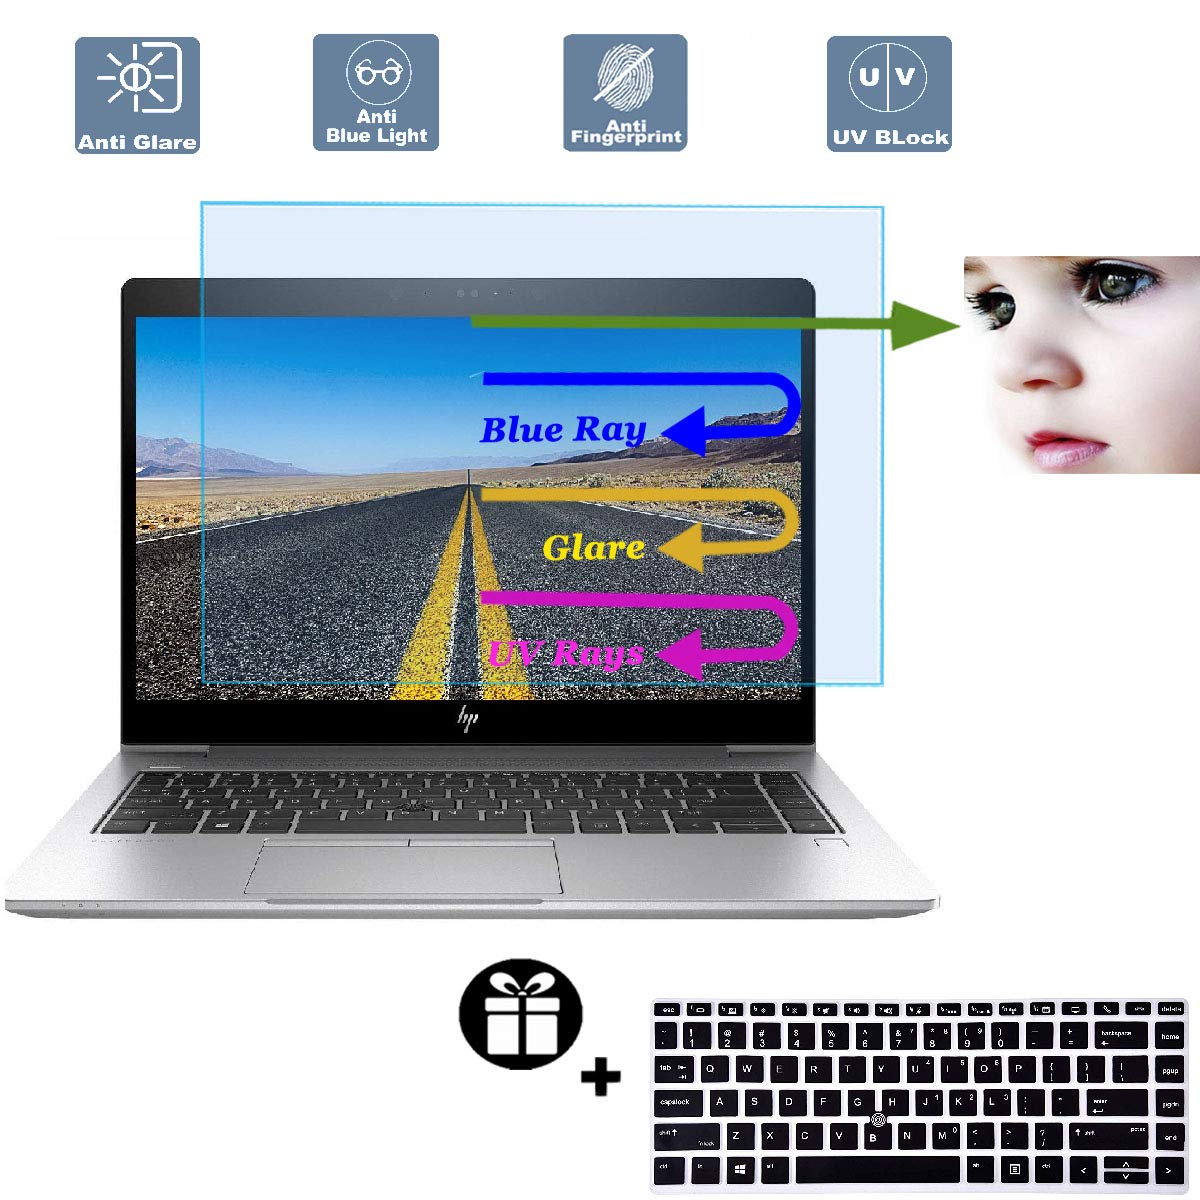 2 Pack Anti/Blue/Light Anti Glare Screen Protector Fit HP Elitebook 840 G5 14 Touch-Screen Laptop with Gift Keyboard Cover Eyes Protection Filter Reduces Eye Strain Help You Sleep Better